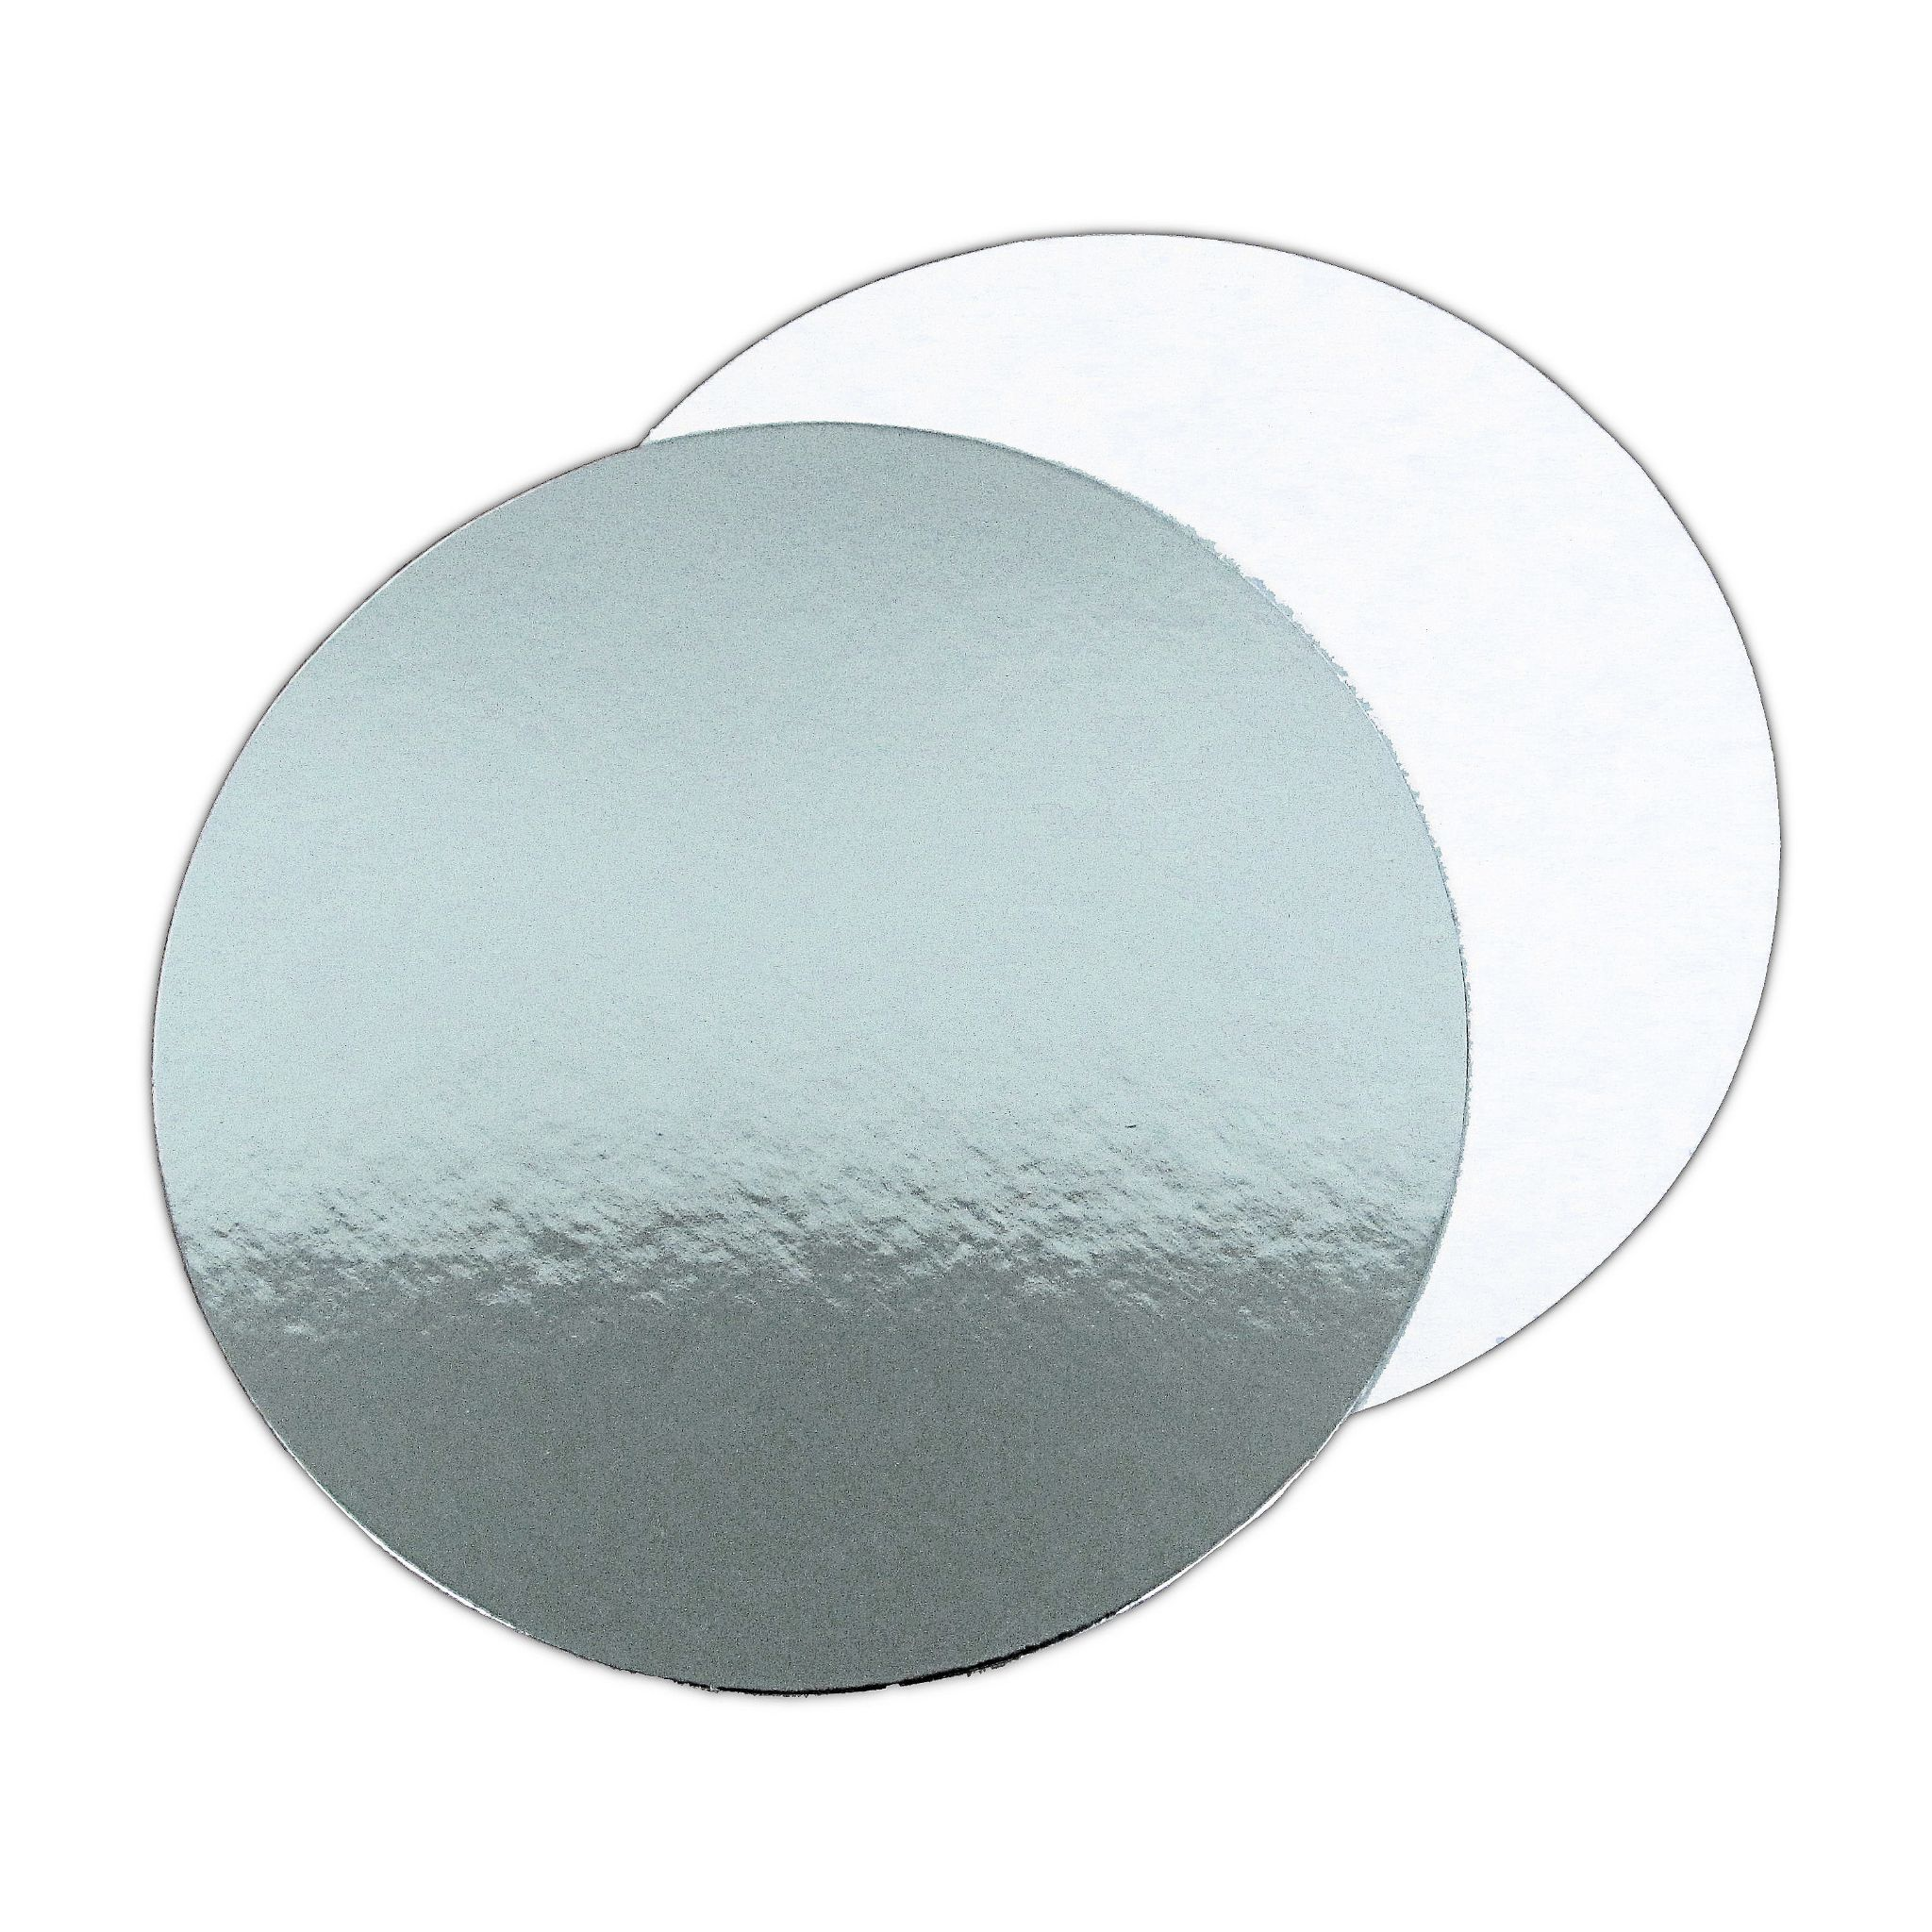 SCC04025 - 4'' Round Silver/White Cut Edge Cake Boards x 25